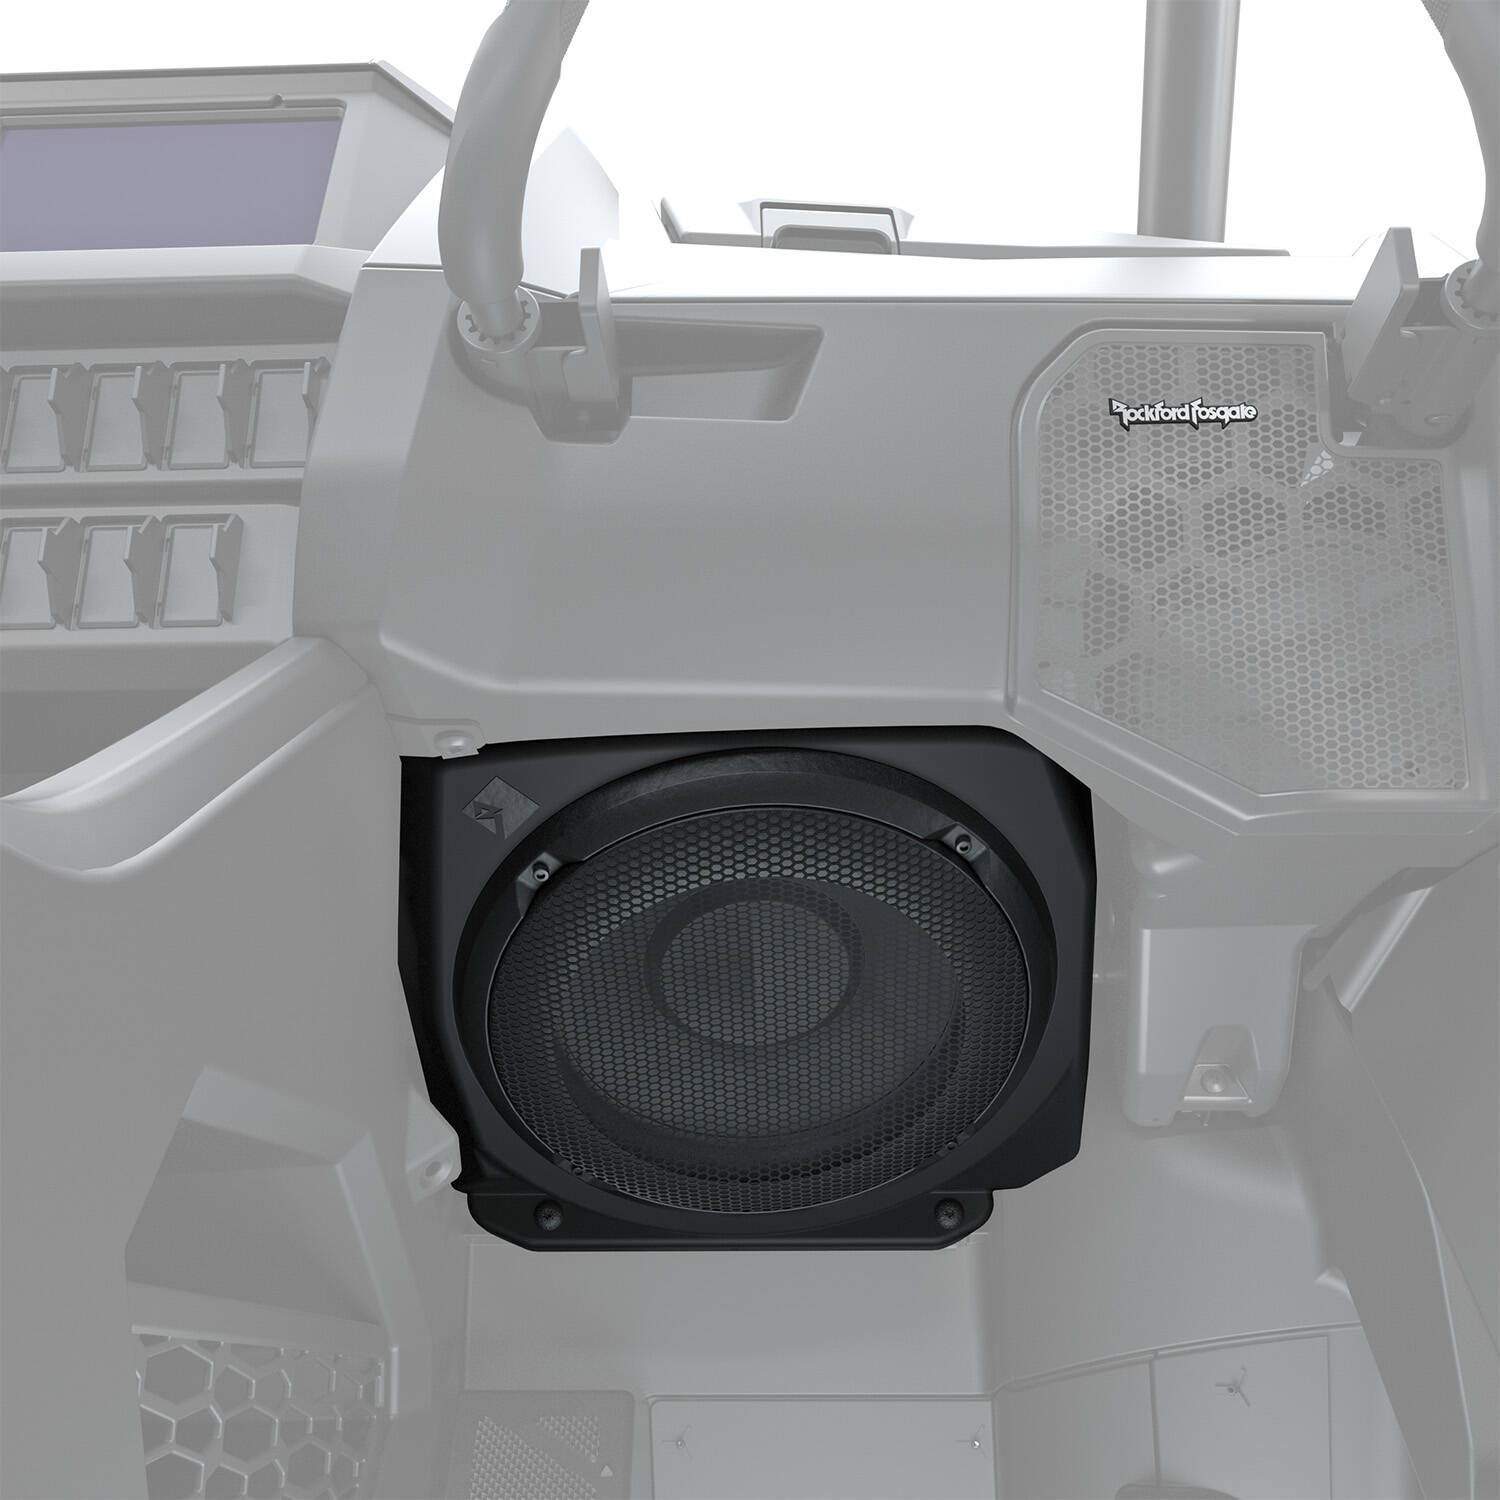 "10"" Subwoofer Stage 3 Upgrade by Rockford Fosgate"